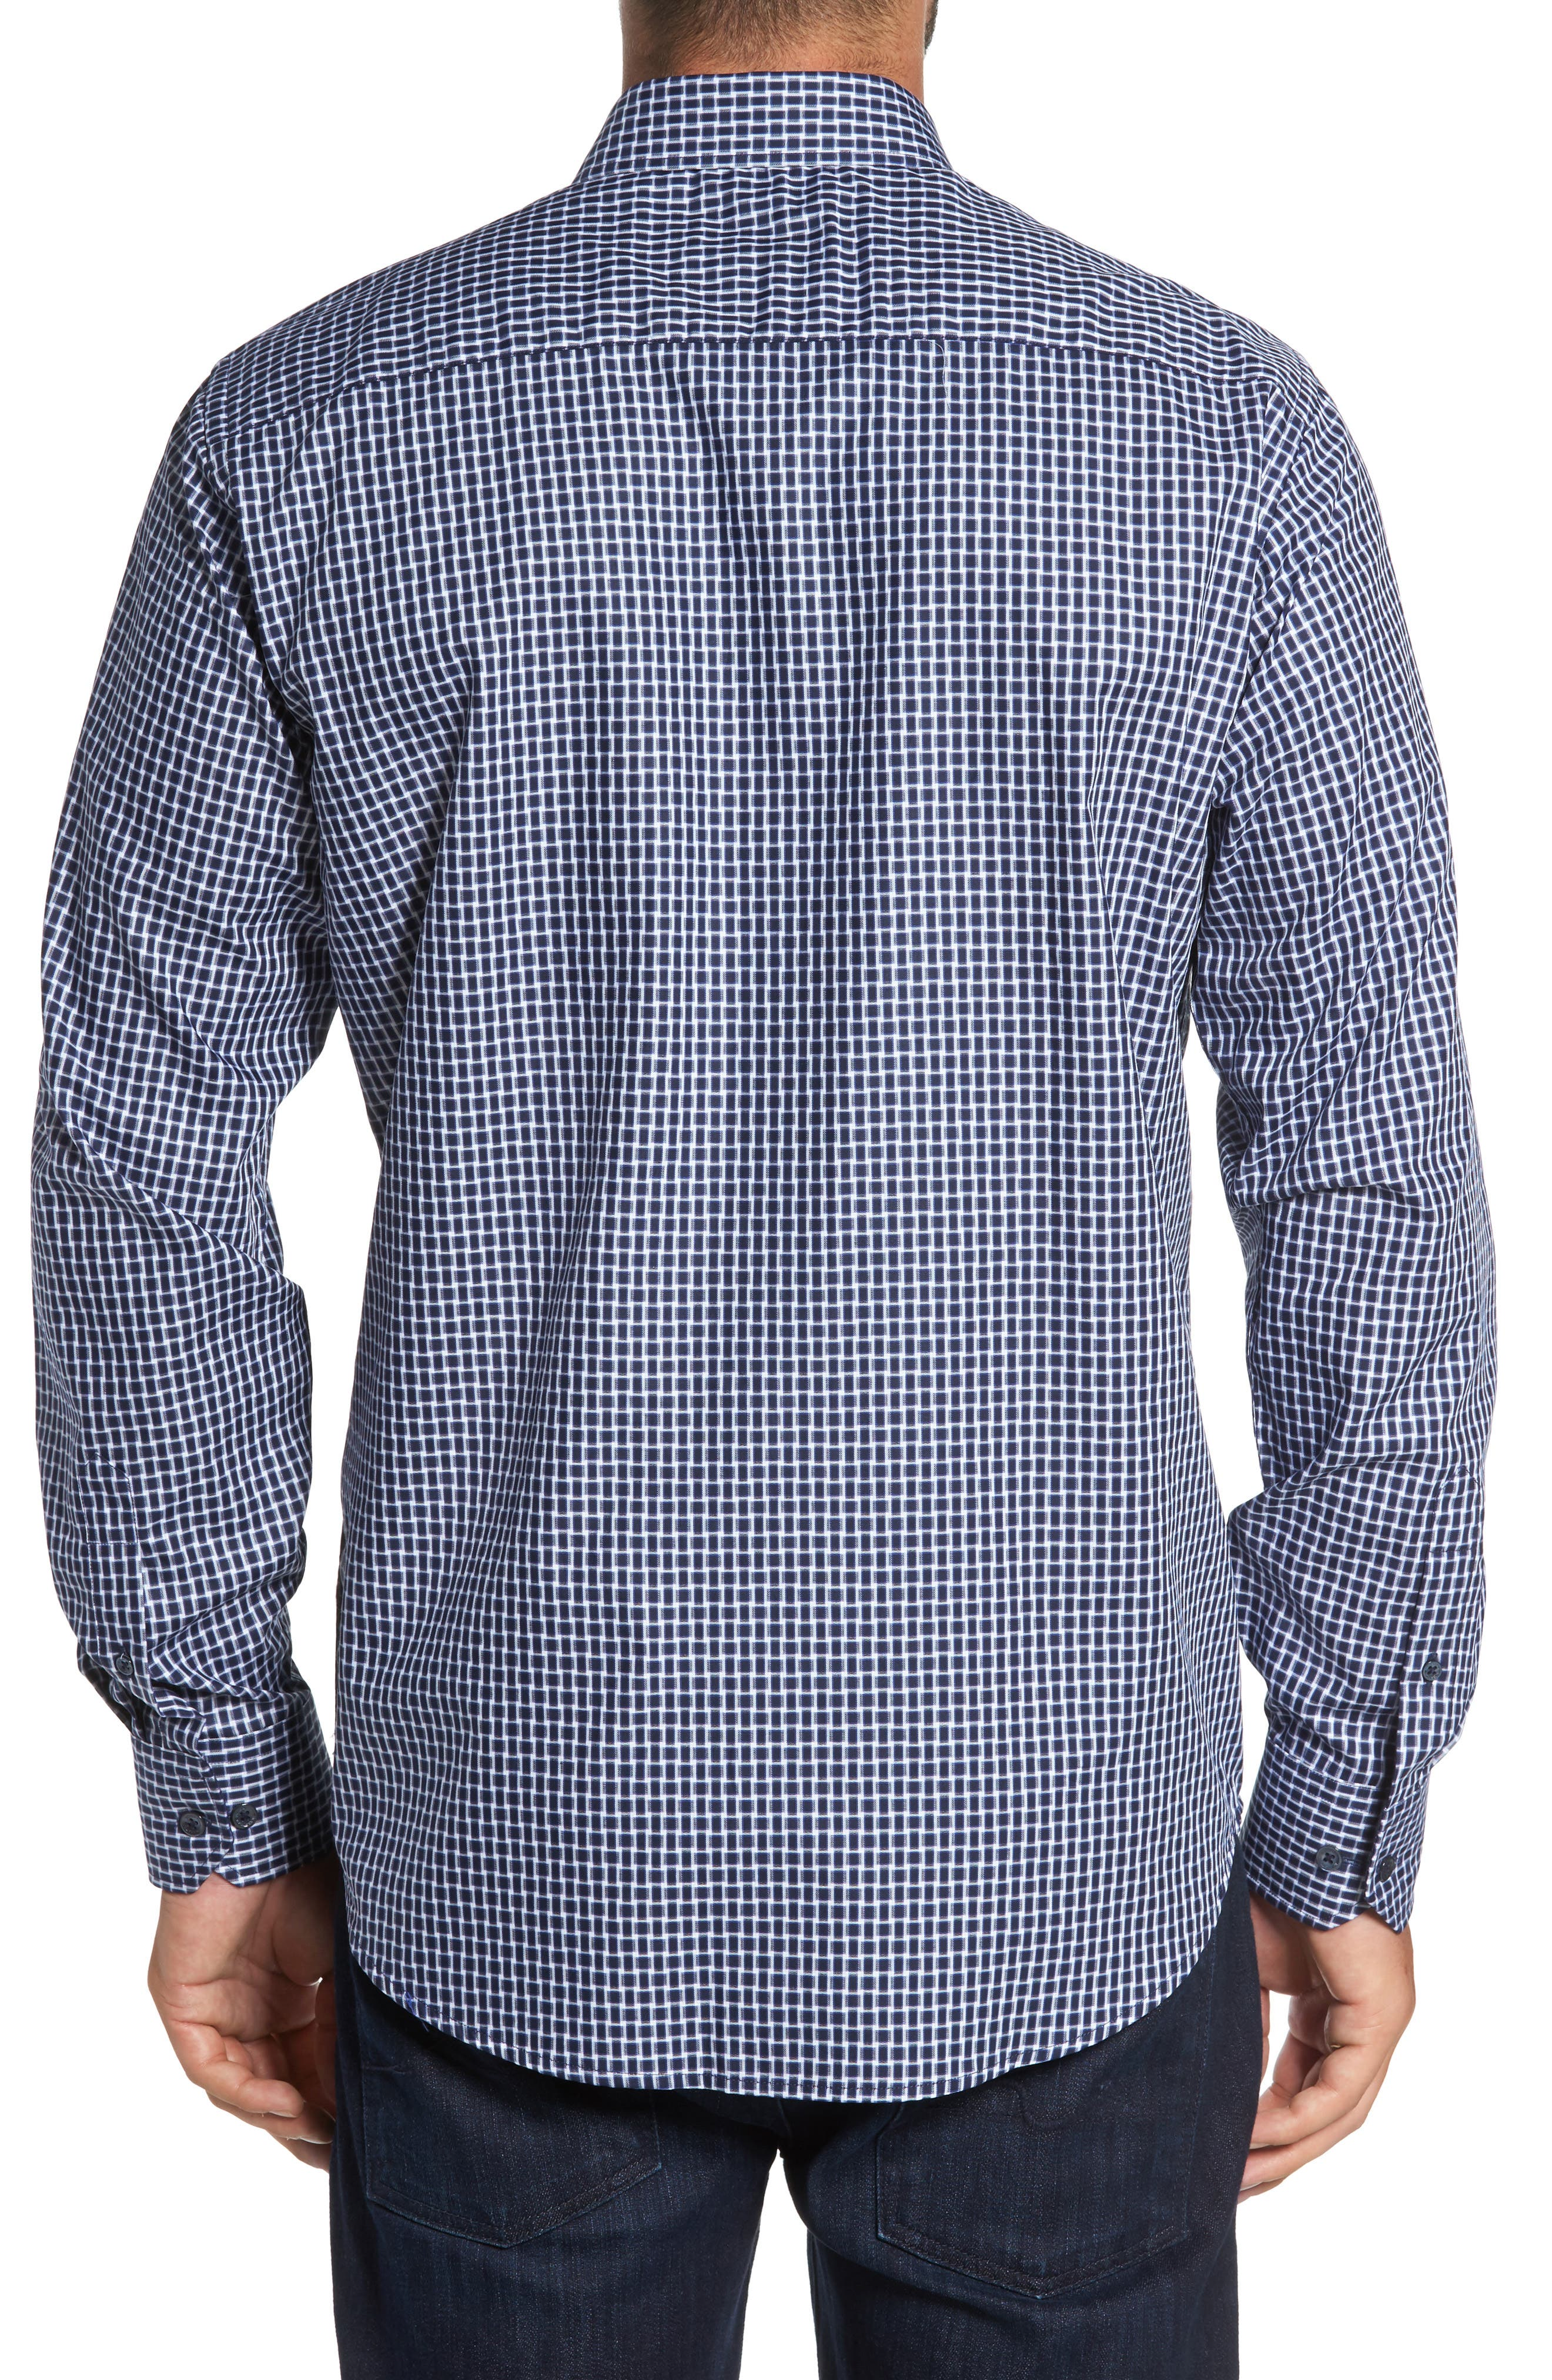 Classic Fit Geo Patterned Sport Shirt,                             Alternate thumbnail 2, color,                             Navy